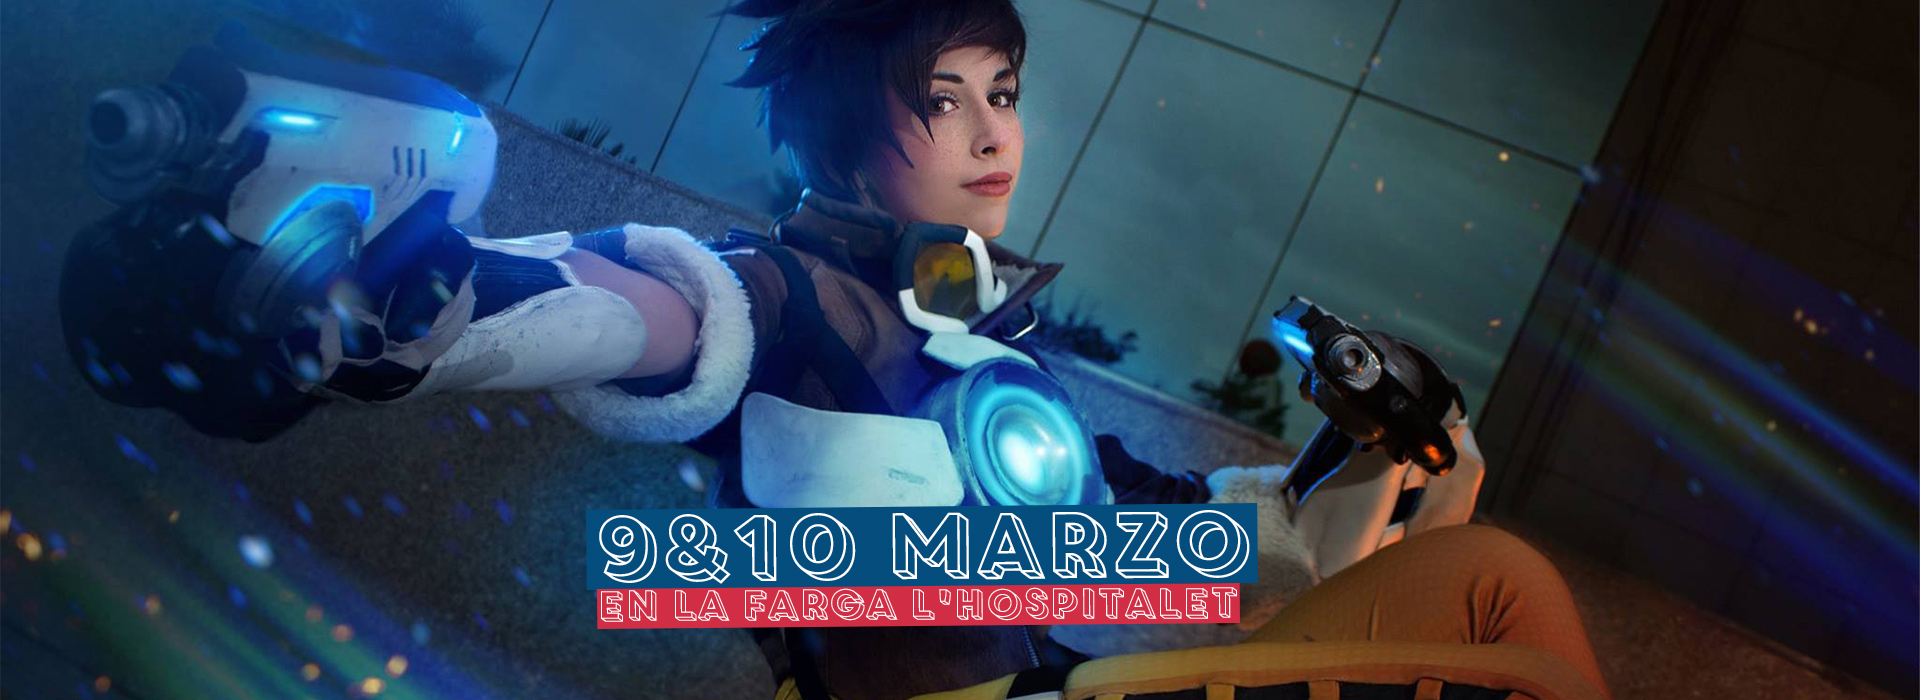 Japan Weekend Barcelona